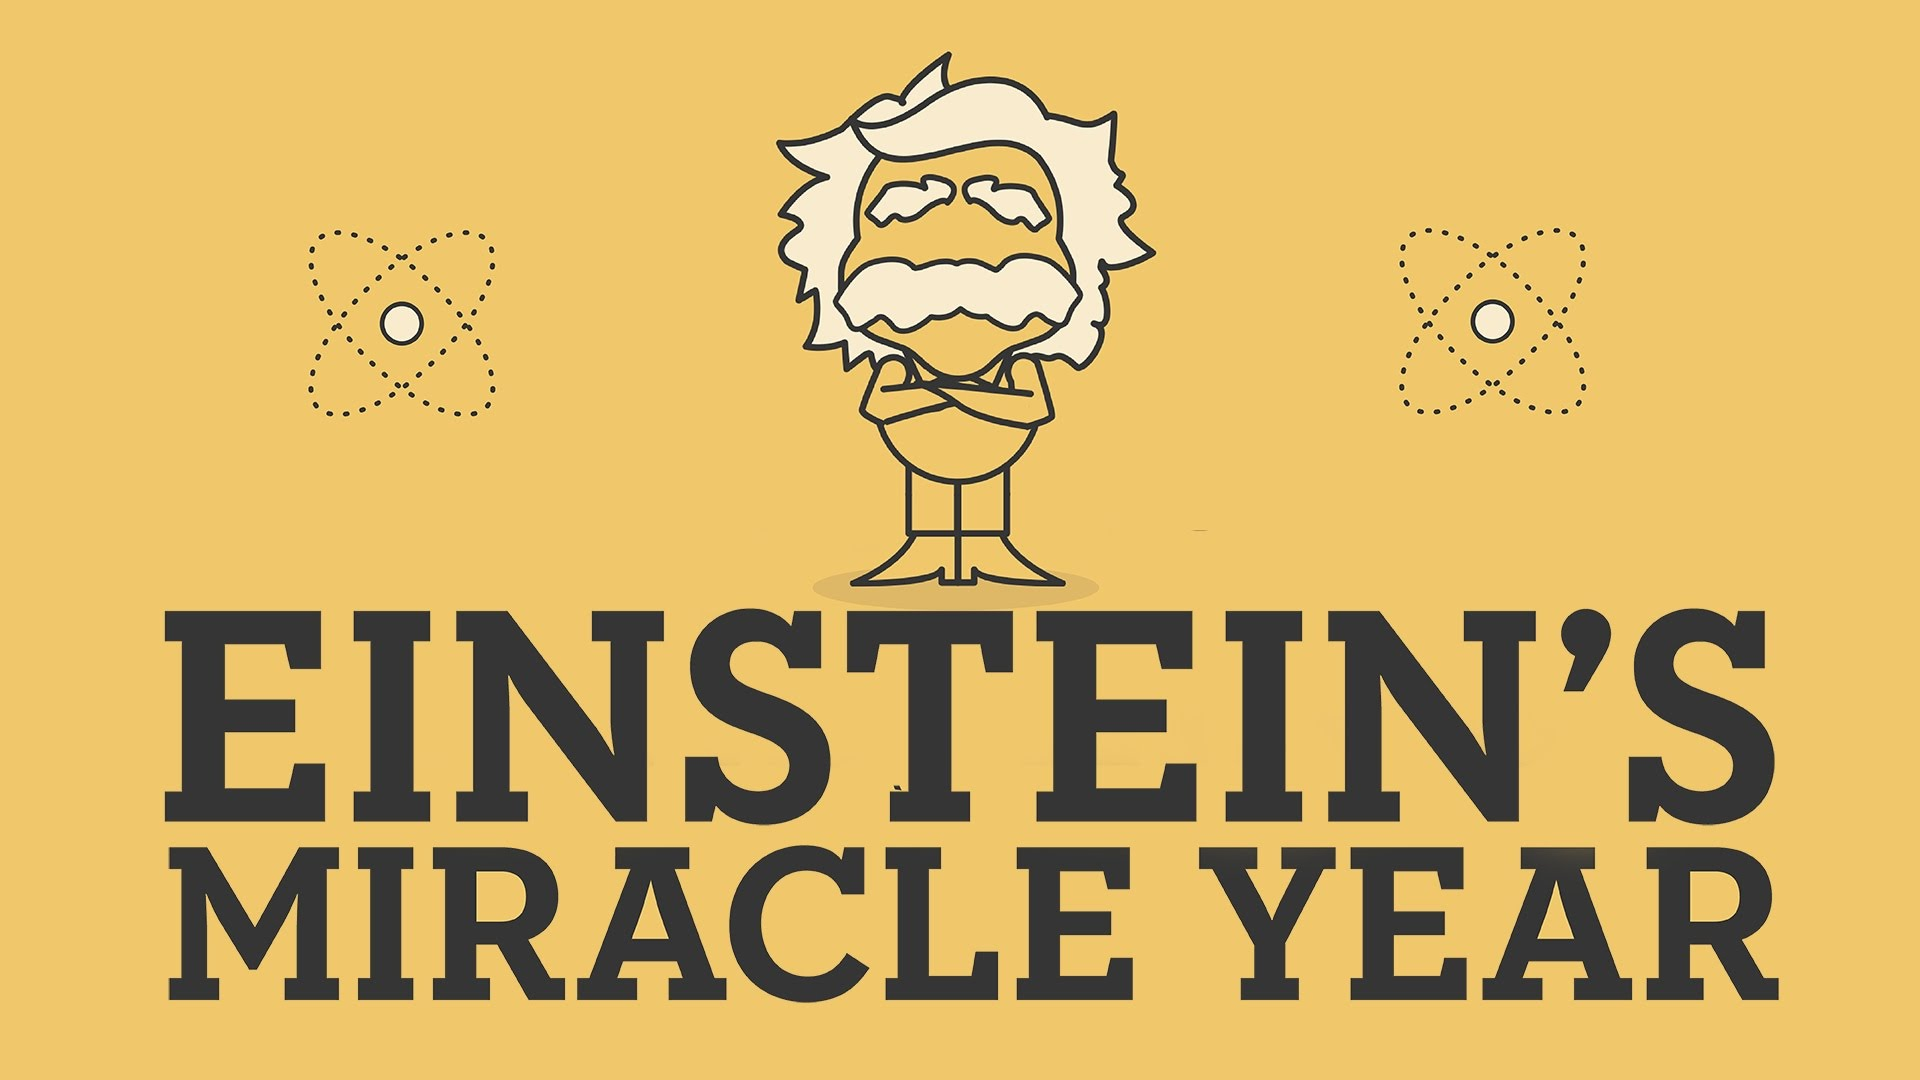 1905 - Einstein's Miracle Year